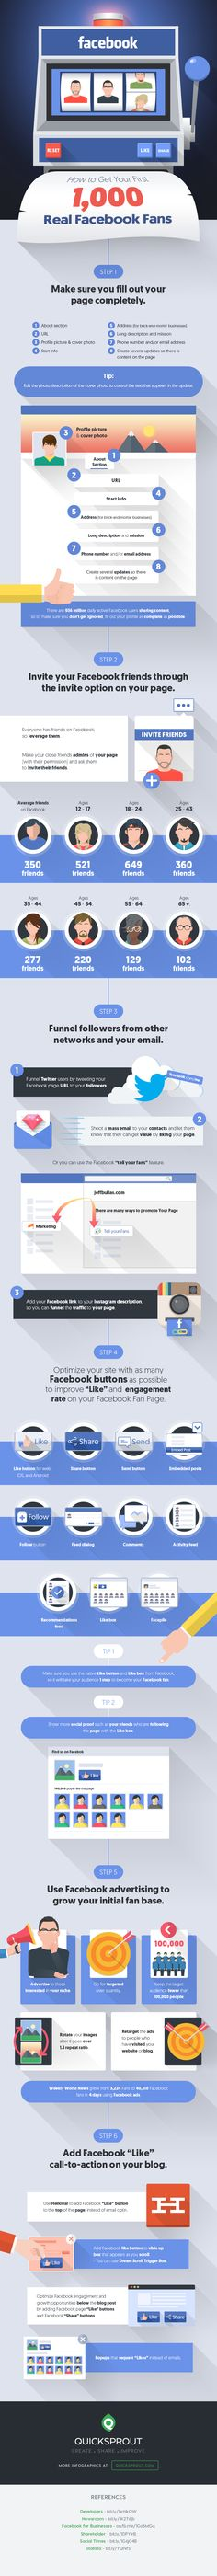 6 Quickest Ways To Grow Your Facebook Followers - #infographic #socialmedia